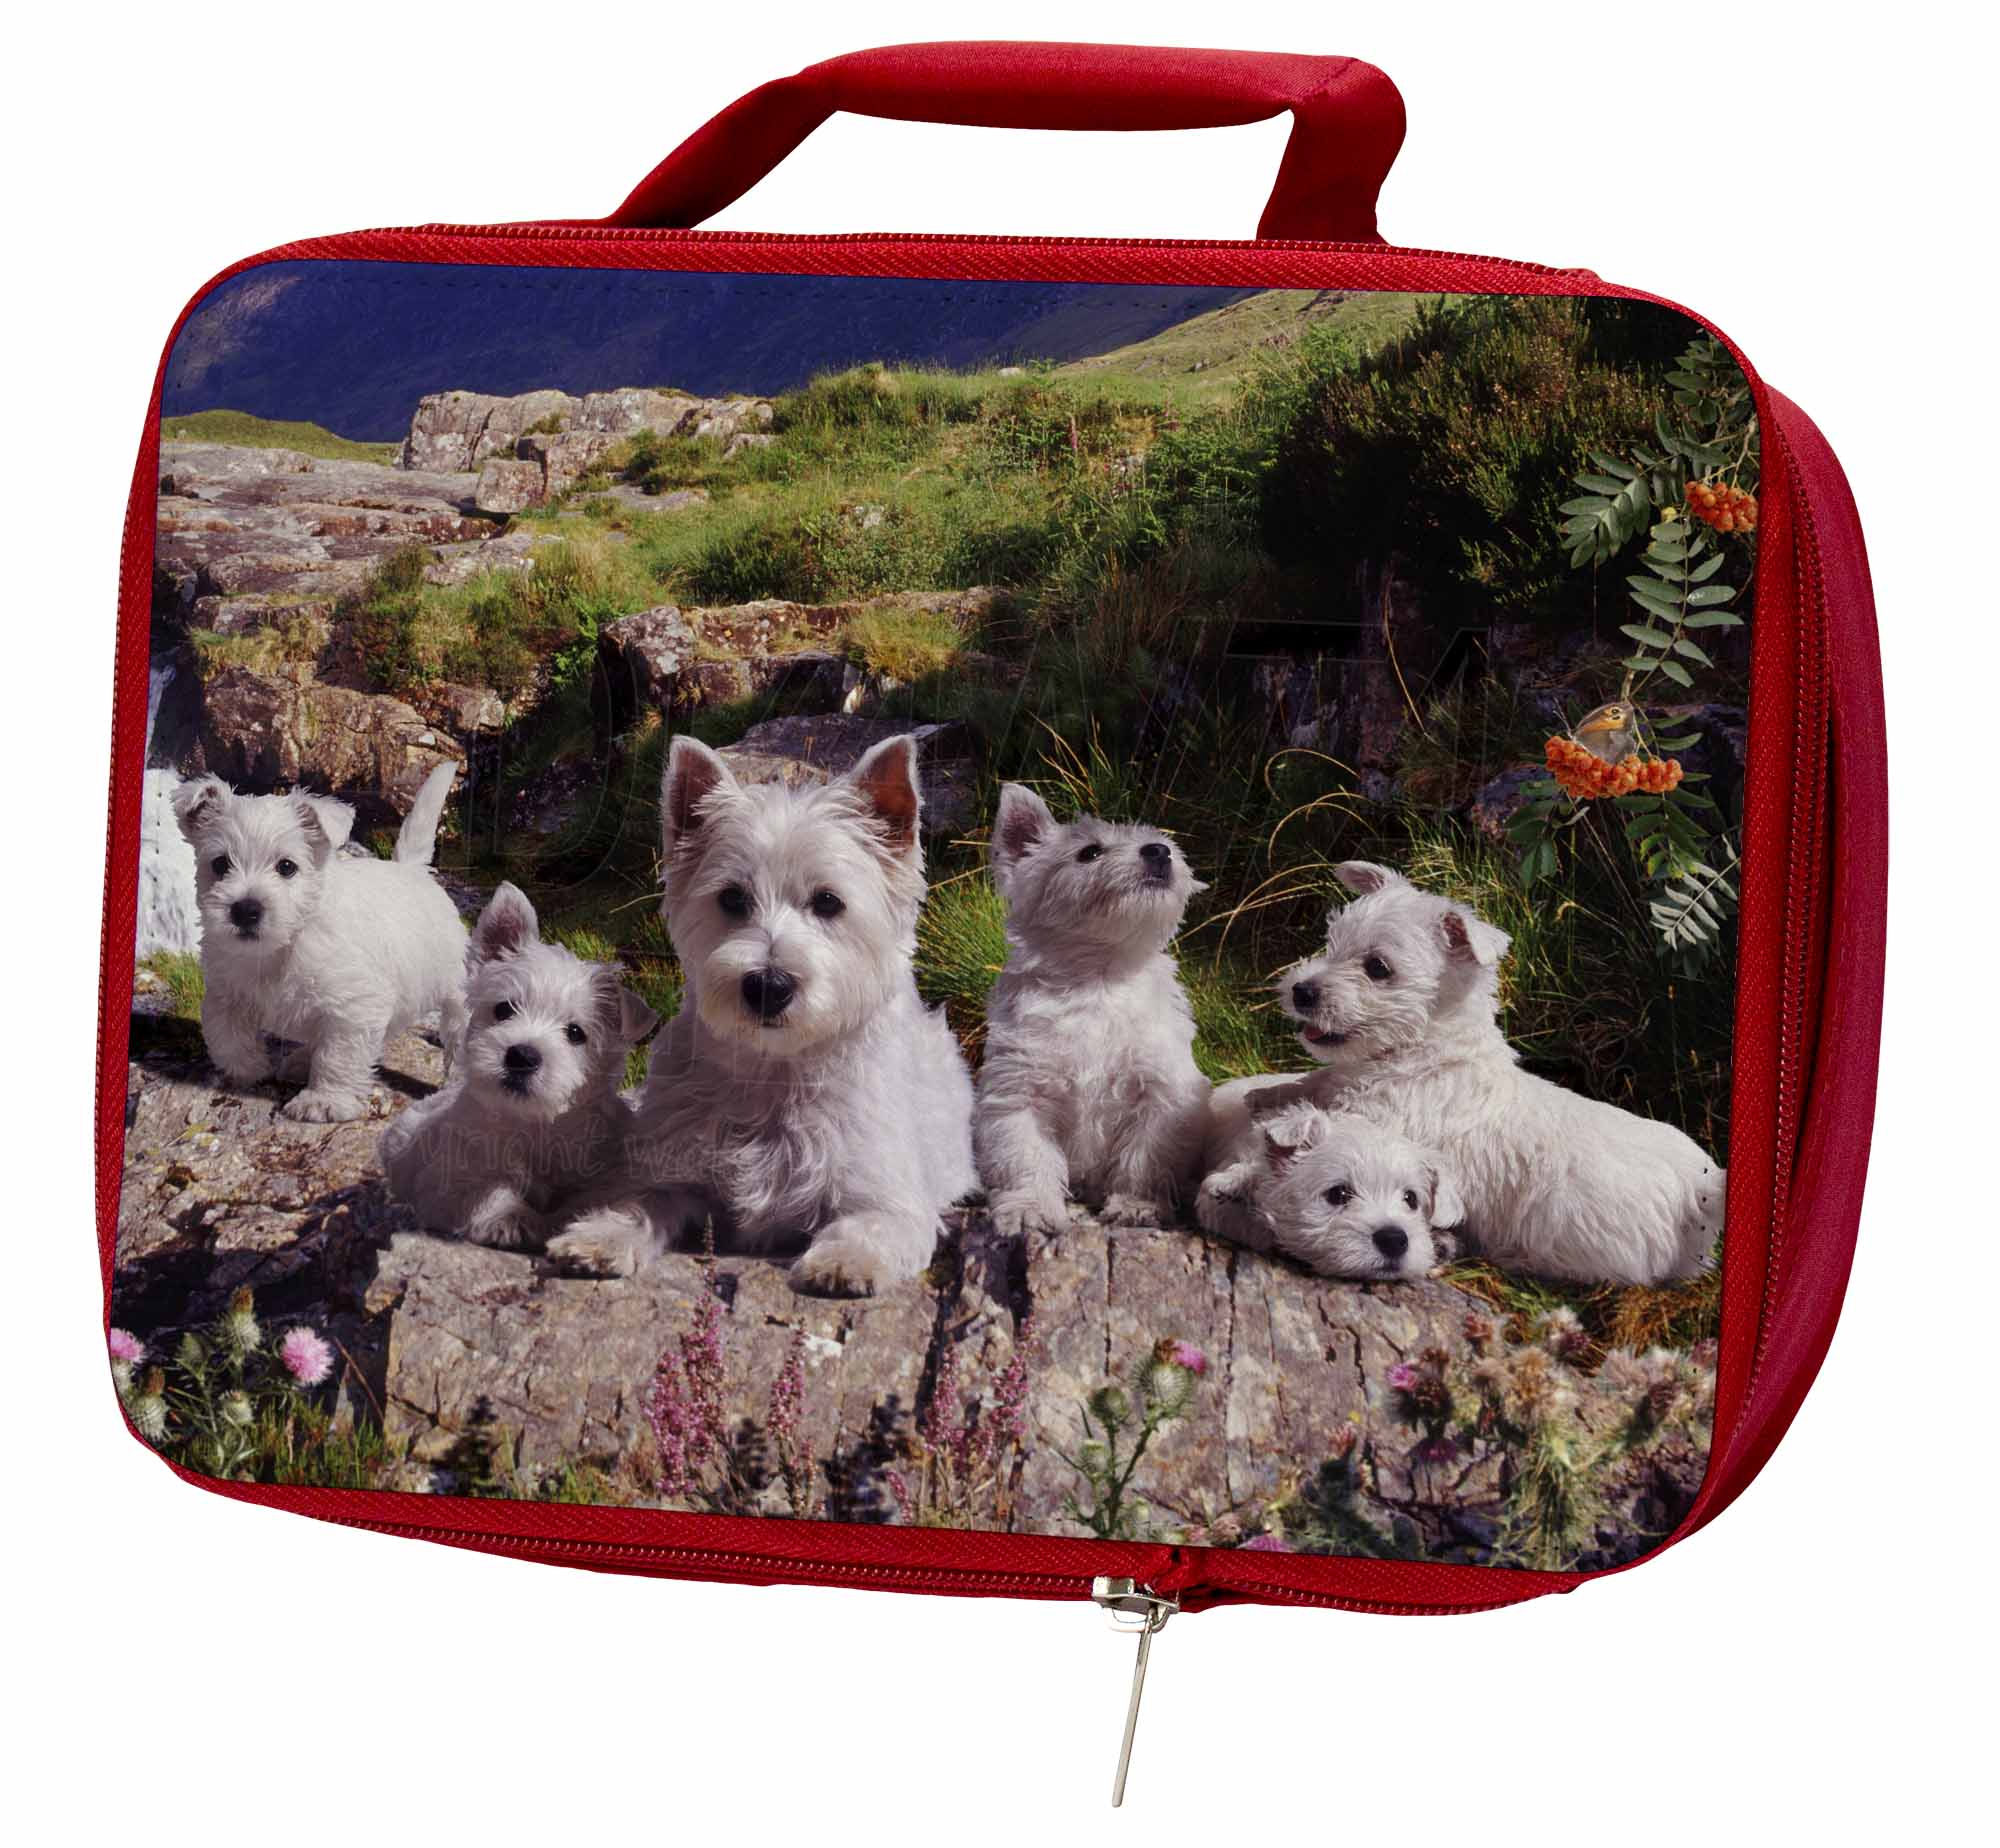 West Highland Terrier Dogs Insulated Bag, Red School Lunch Box/Picnic Bag, Insulated AD-W4LBR 53c354